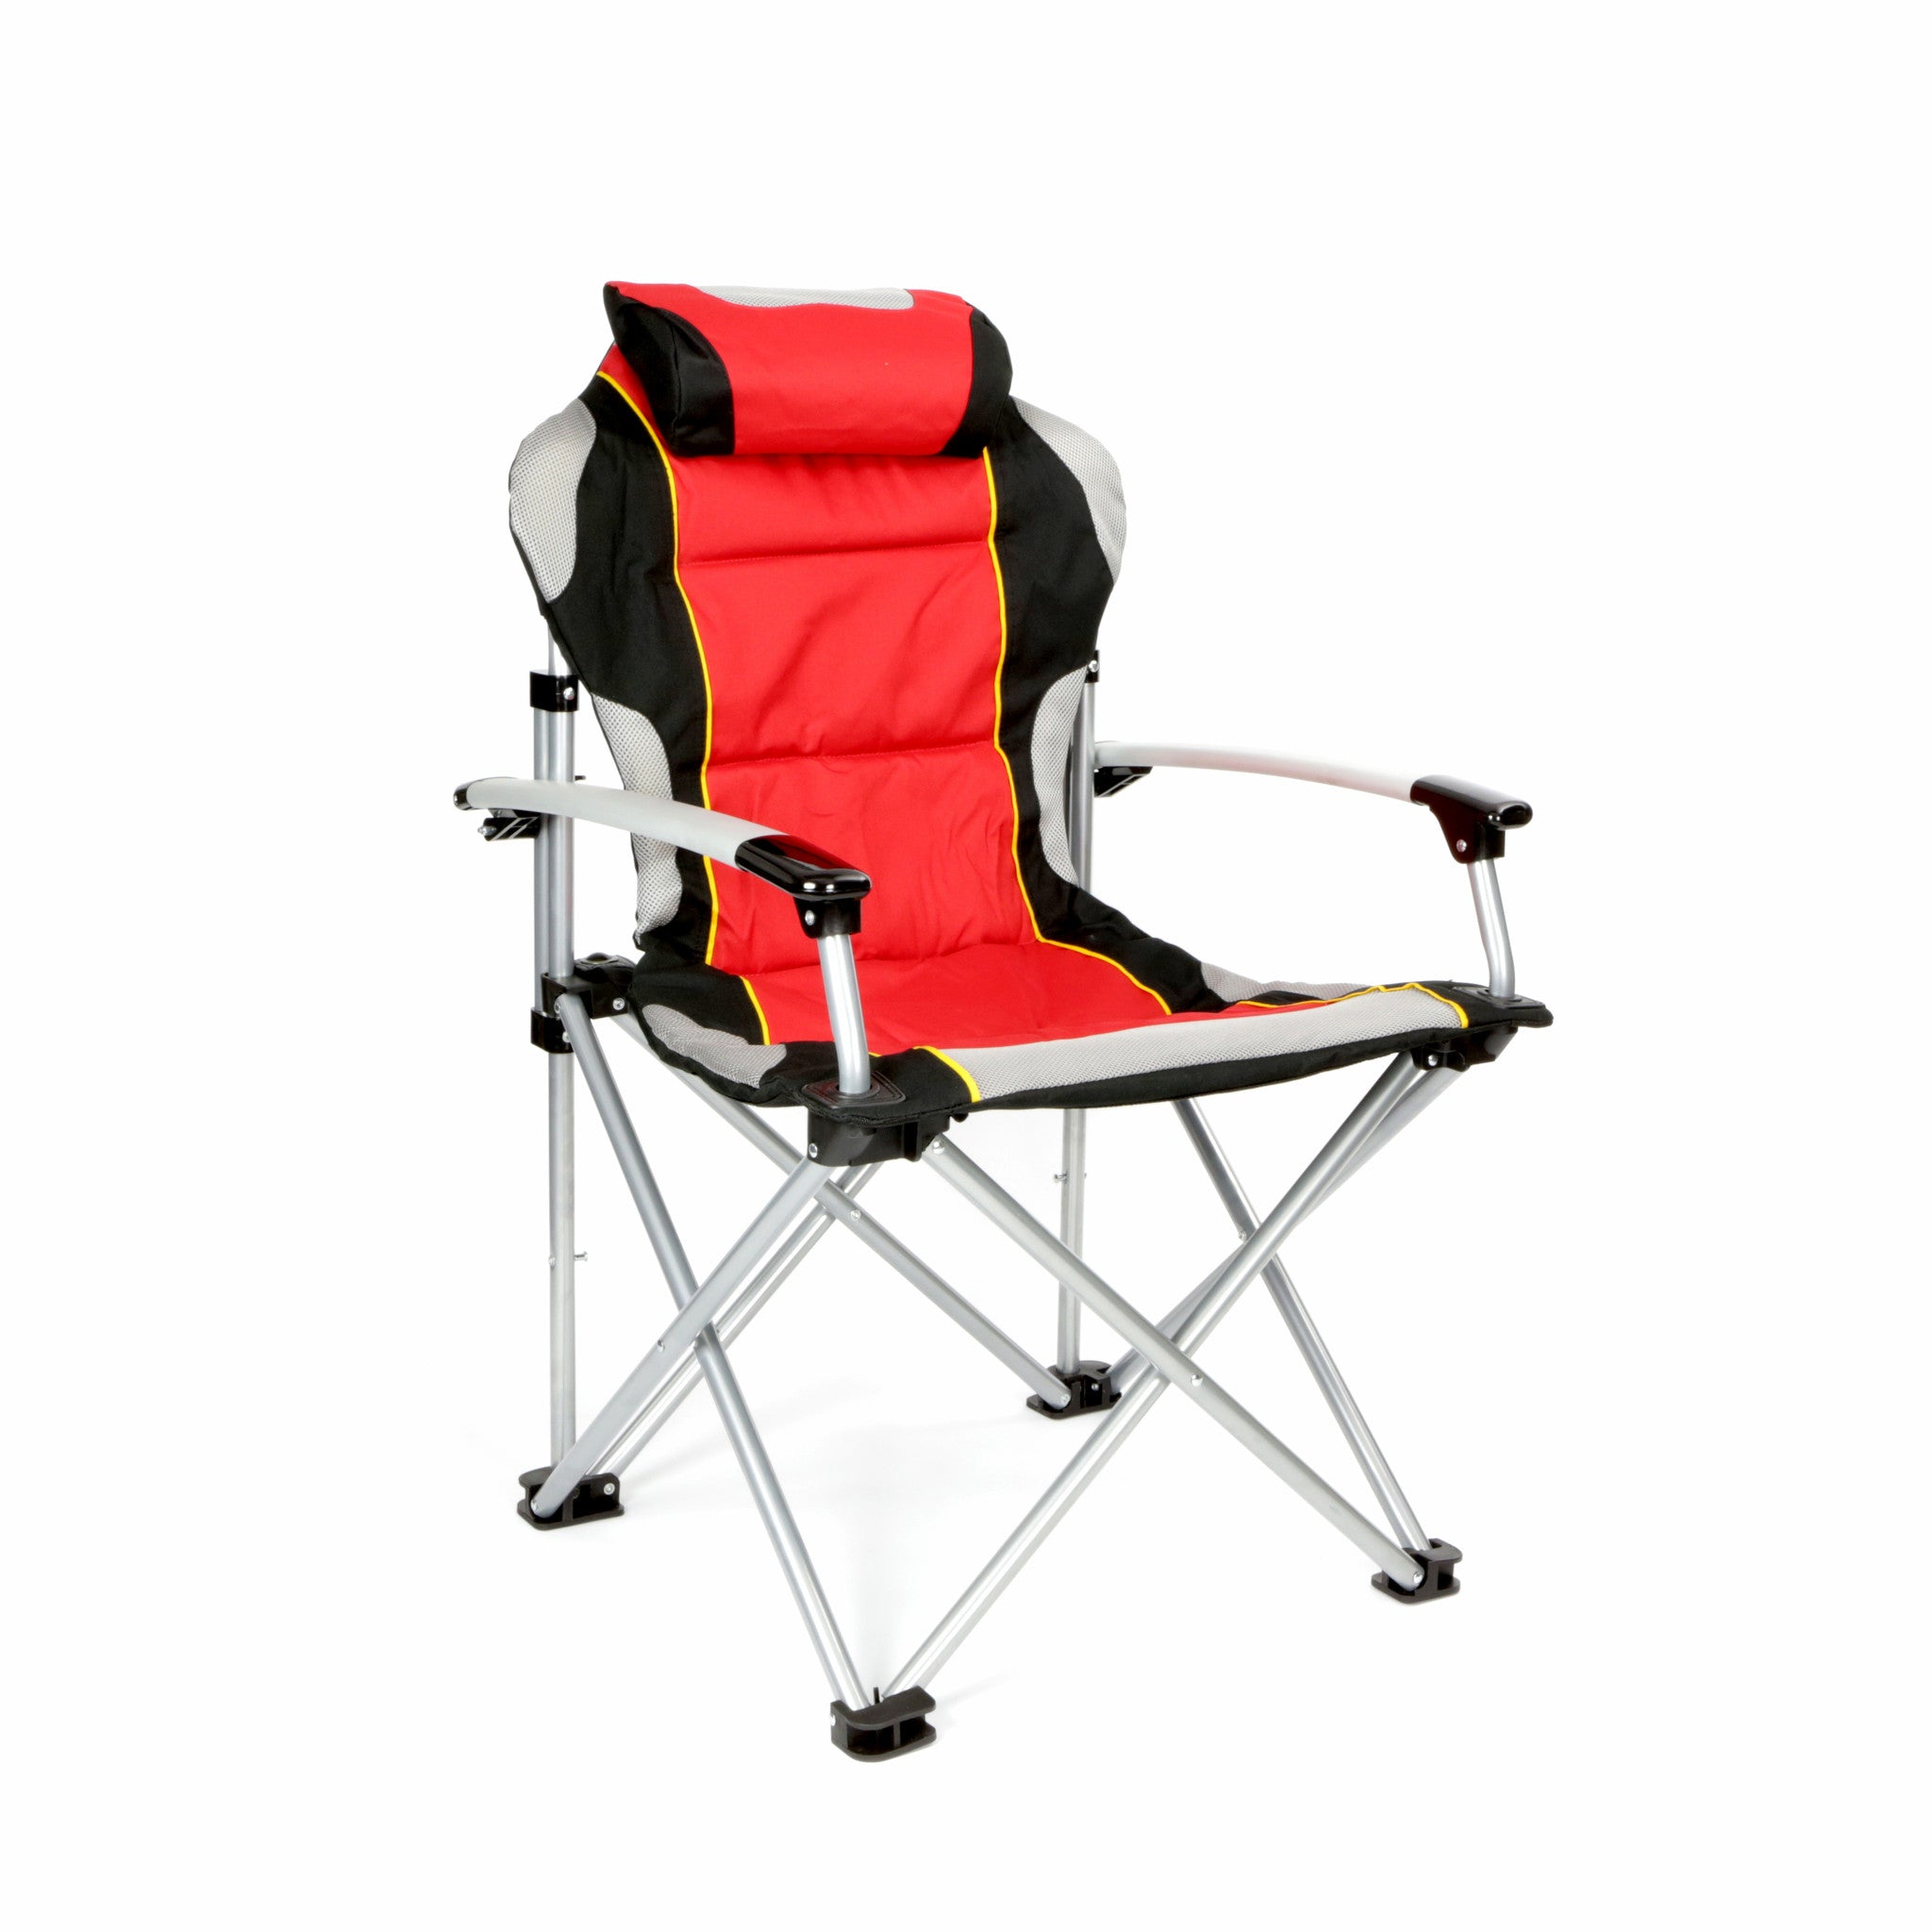 ProMech Racing Fold Up Chair Paddock Chair With Carry Bag   Scarlet Red  Track Day